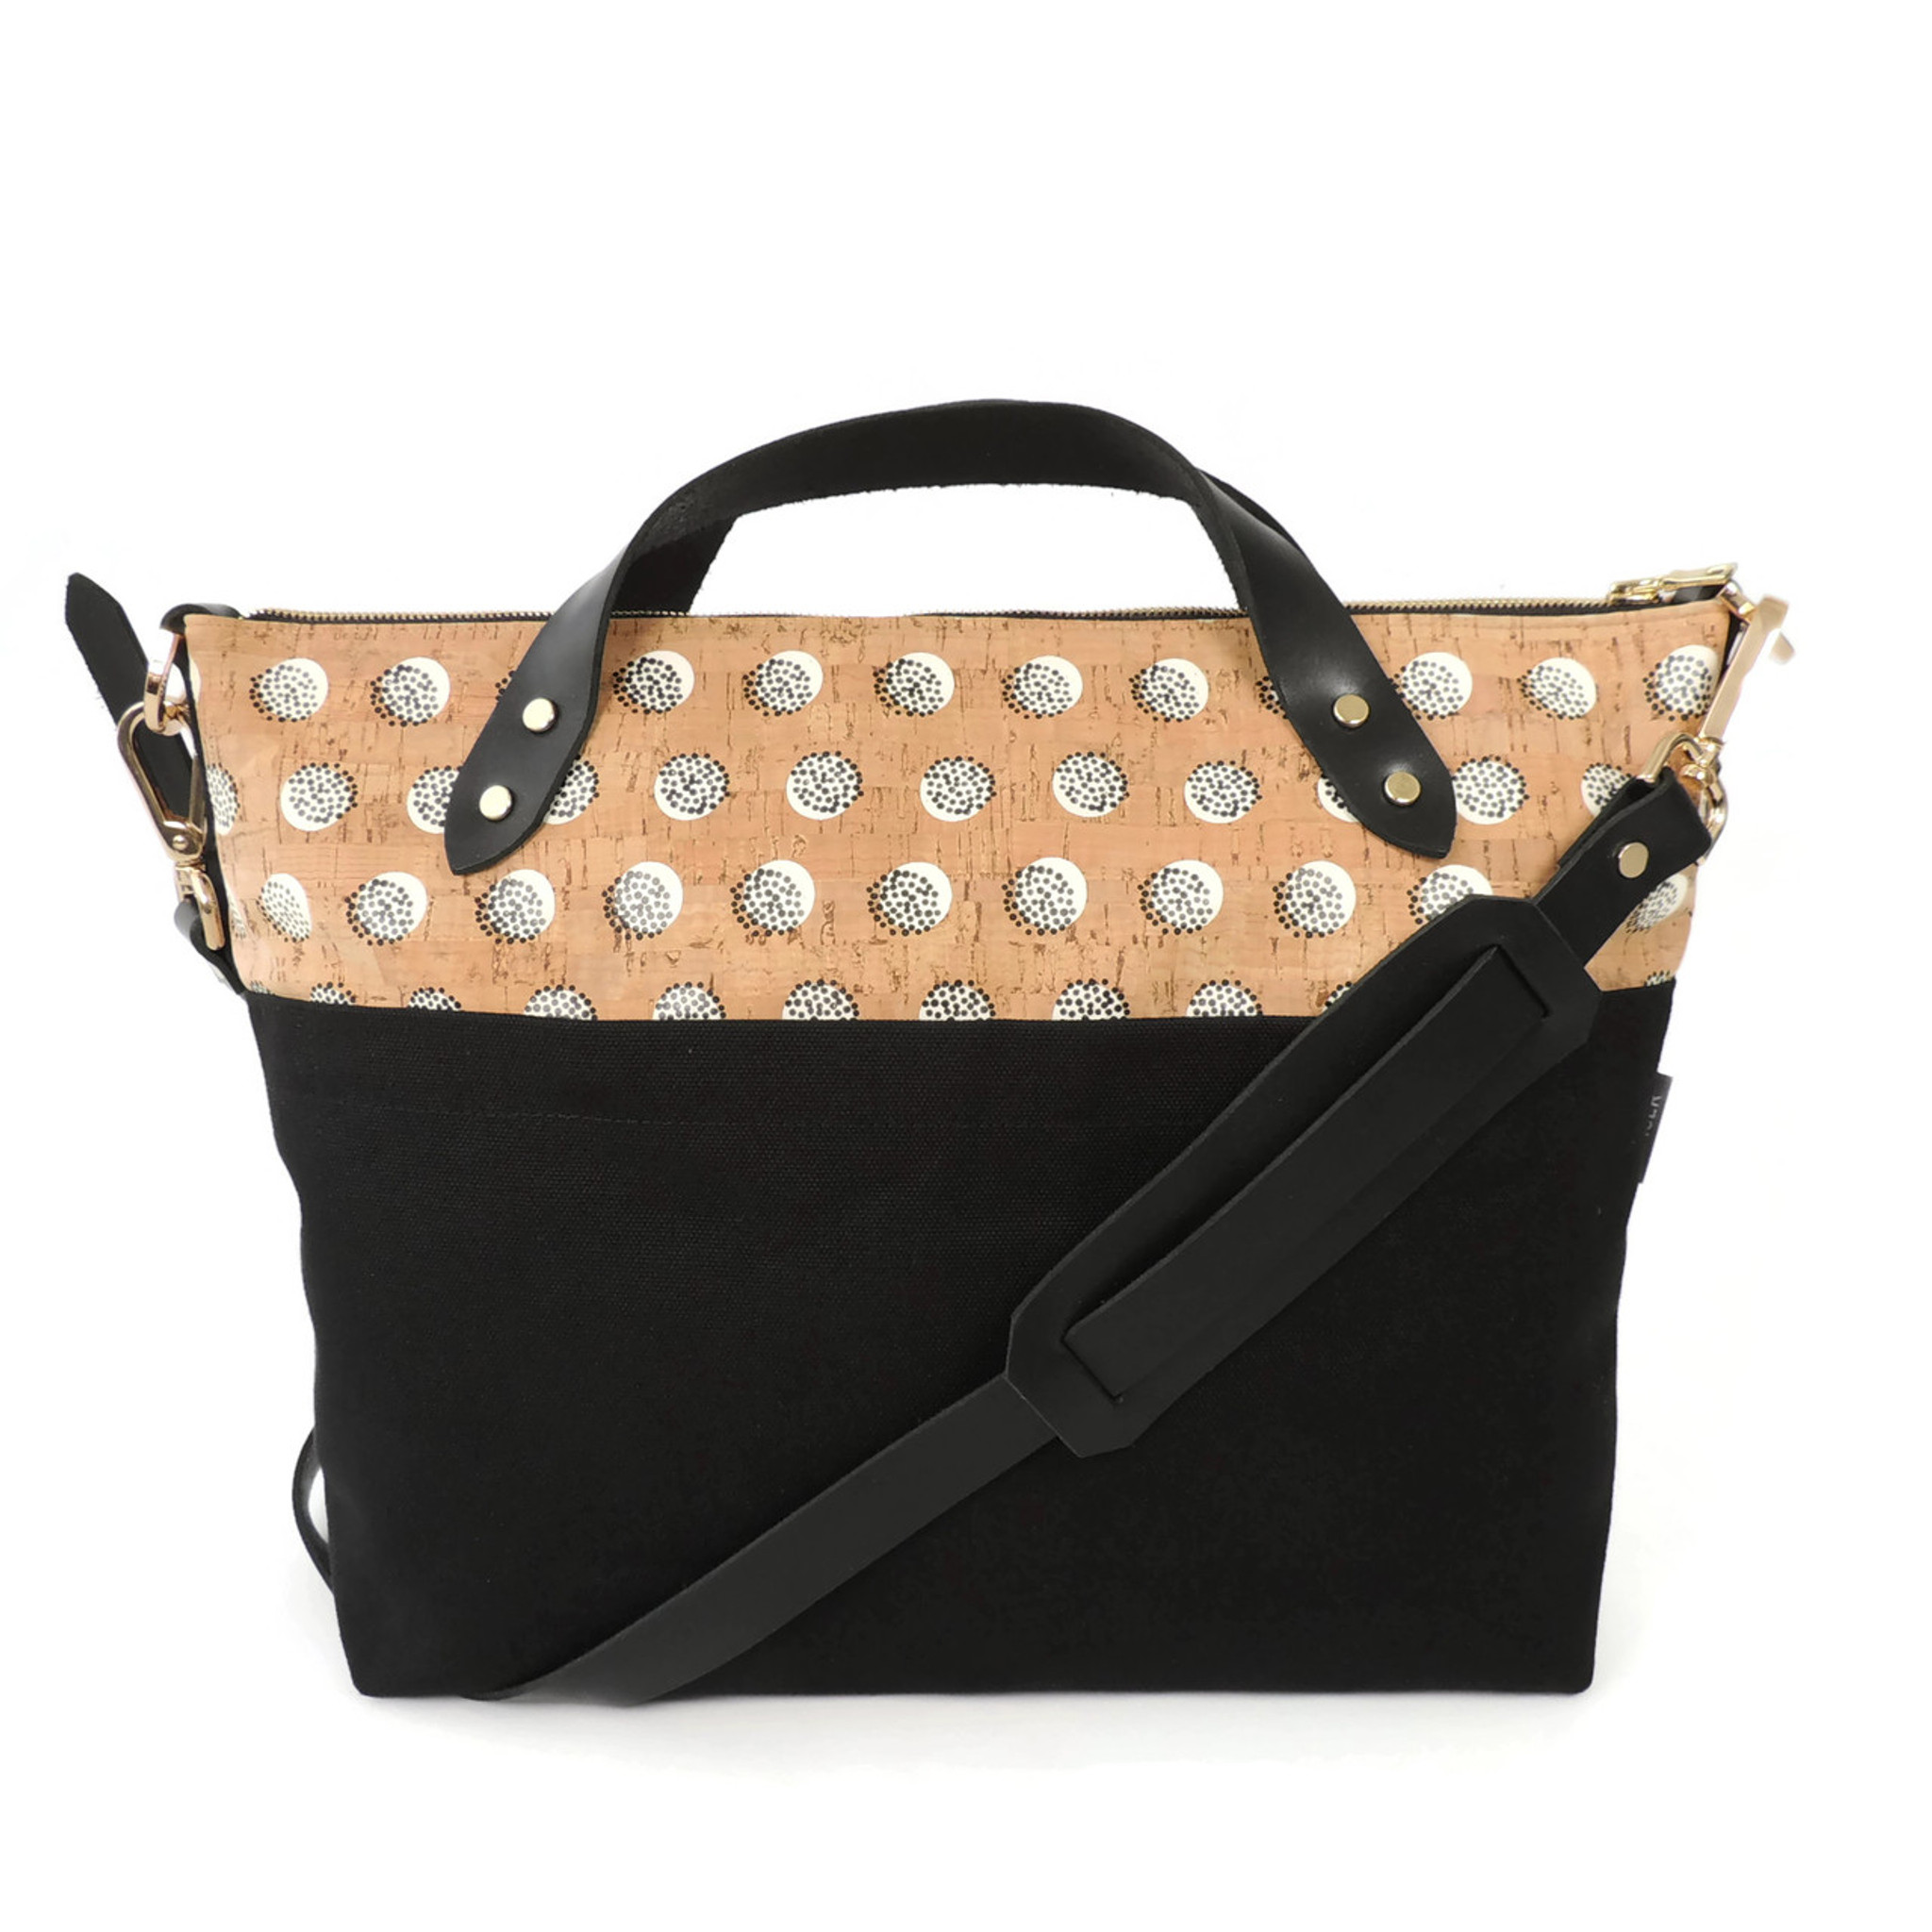 Satchel in Black Dandelion Cork